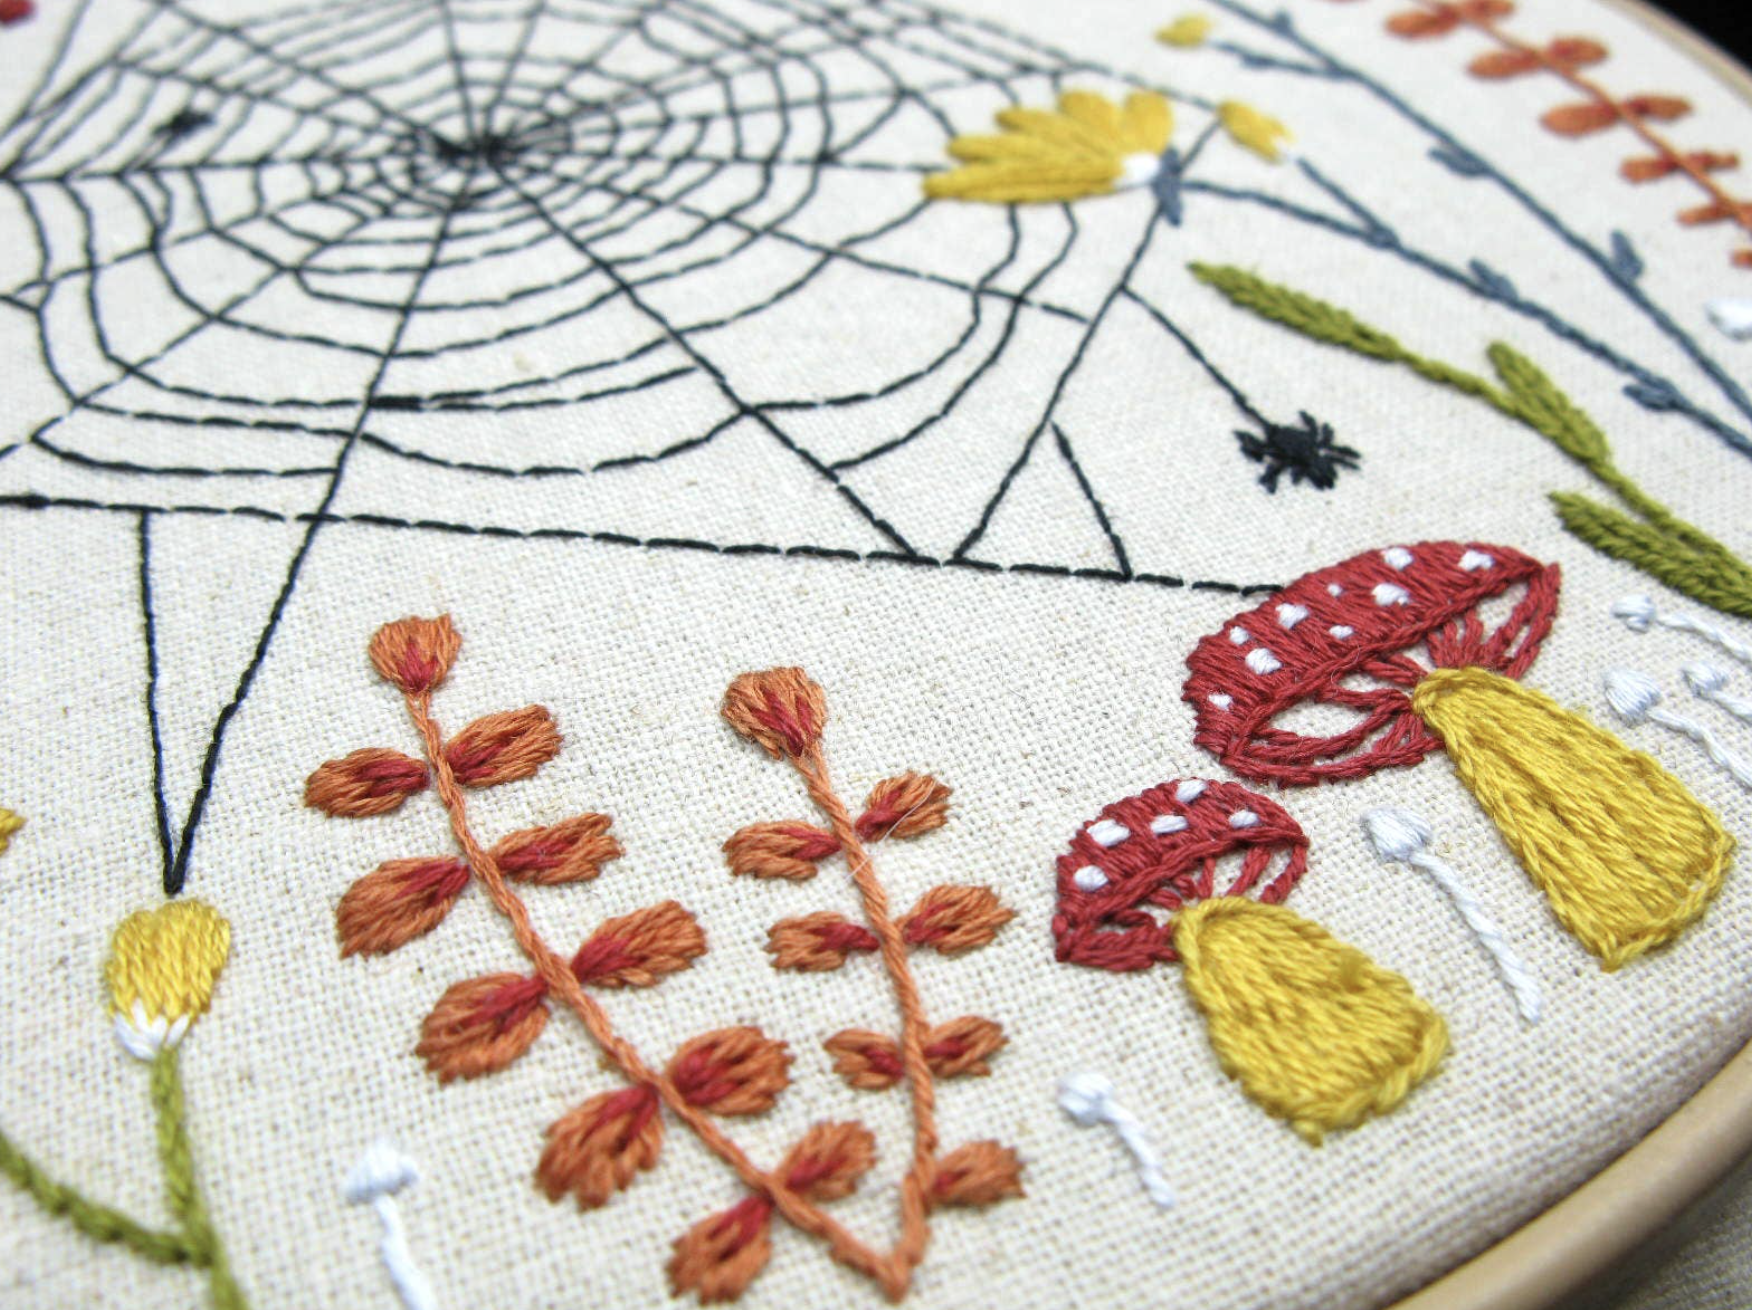 Woven Web Embroidery Kit